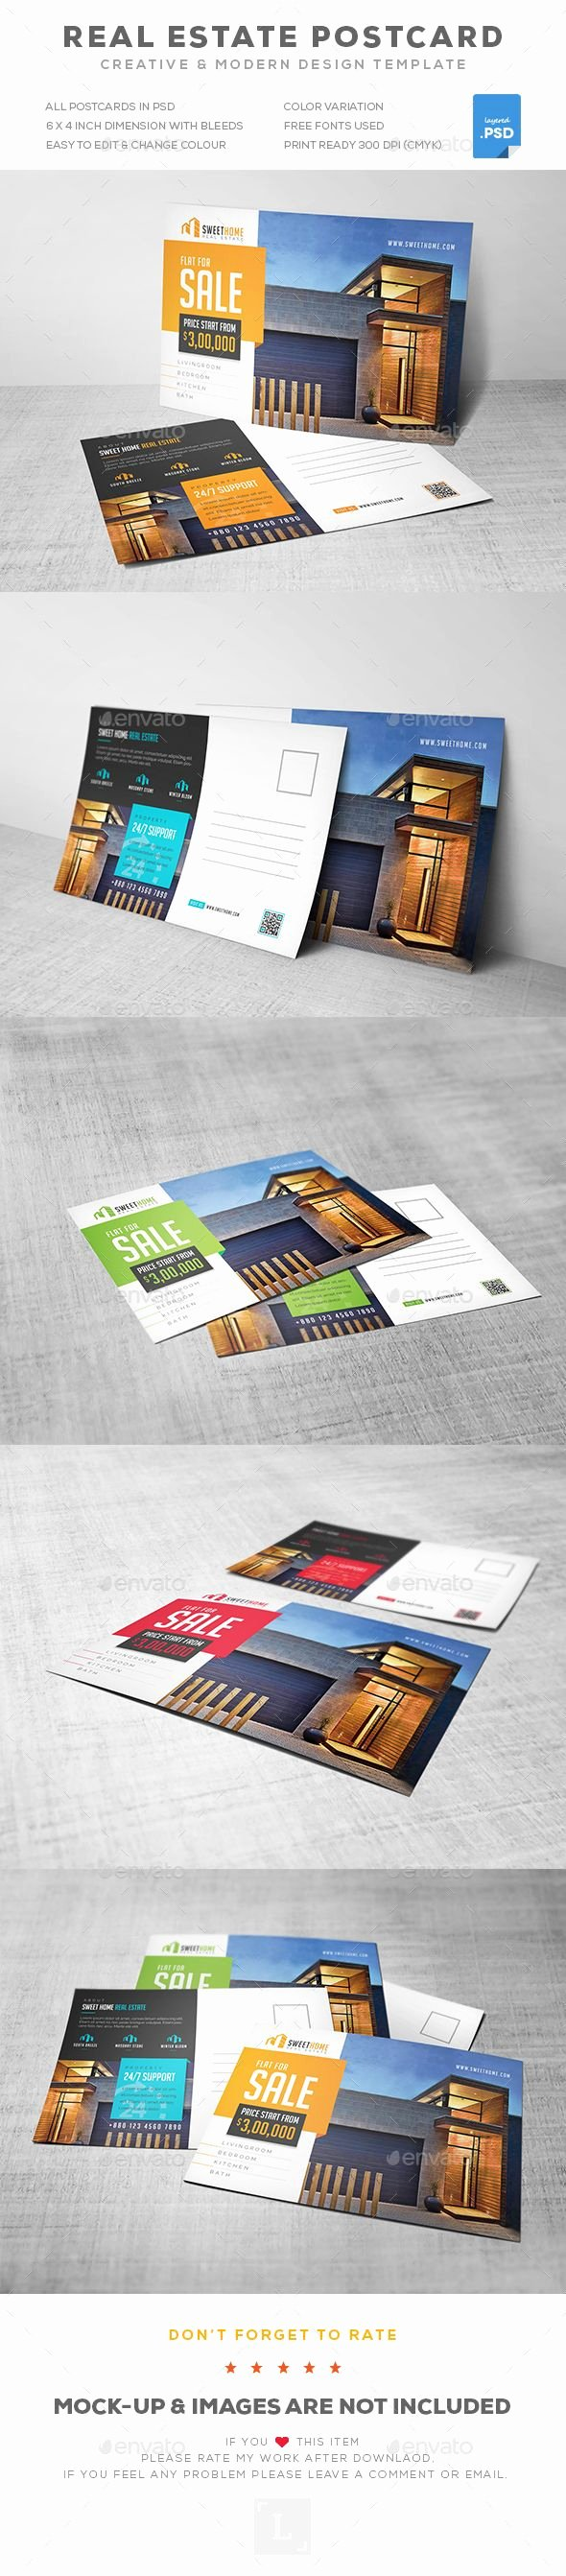 Real Estate Postcards Templates Beautiful Best 25 Real Estate Postcards Ideas On Pinterest